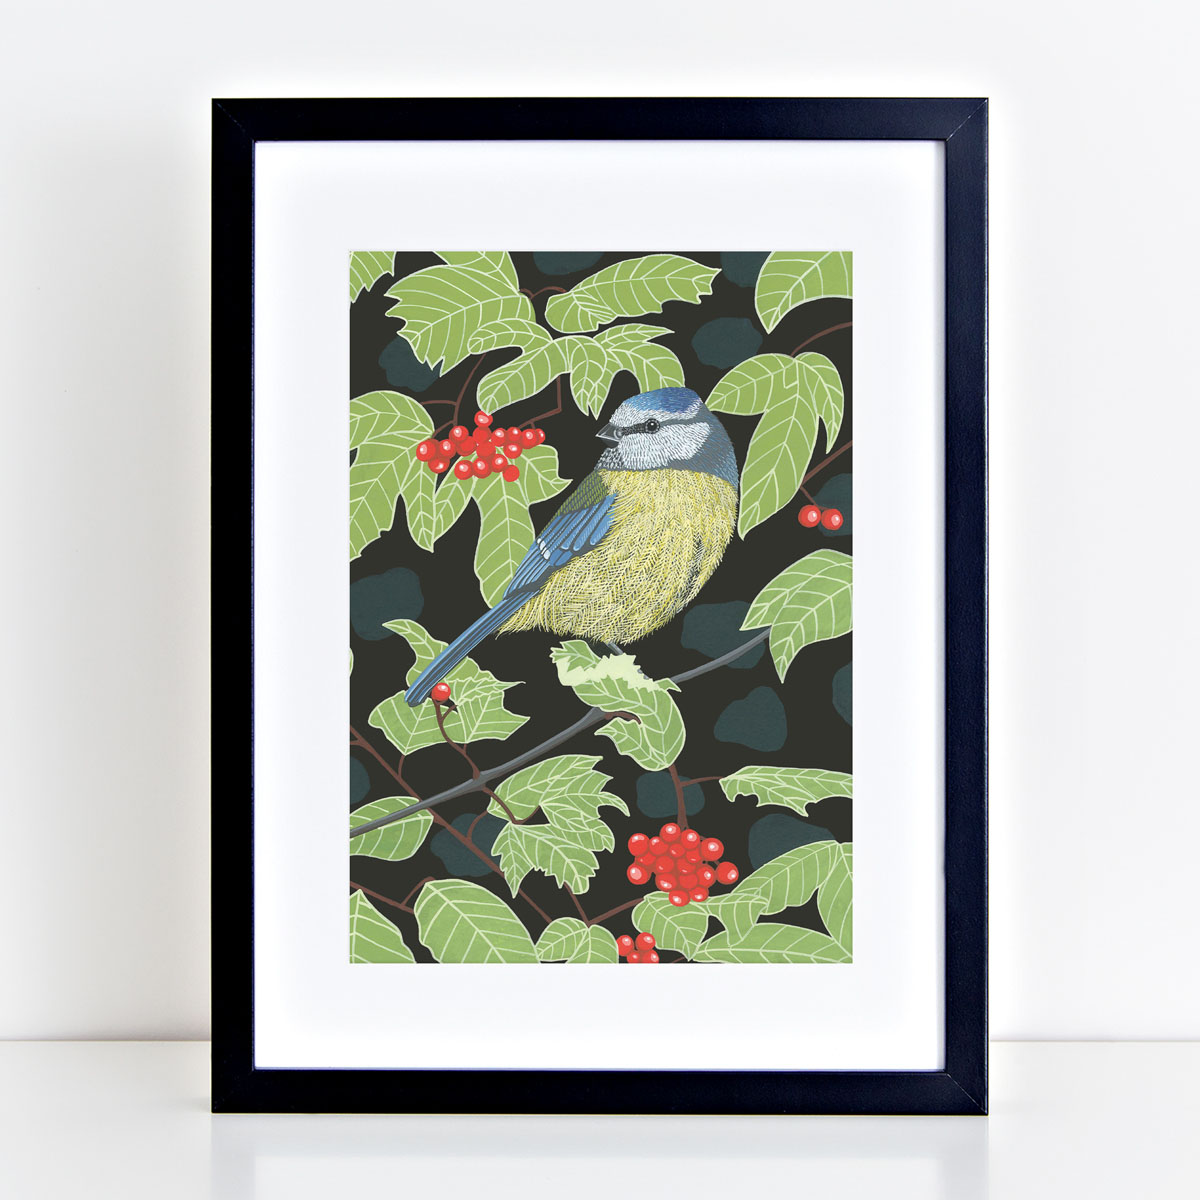 Blue Tit Garden Bird Mounted And Framed Print